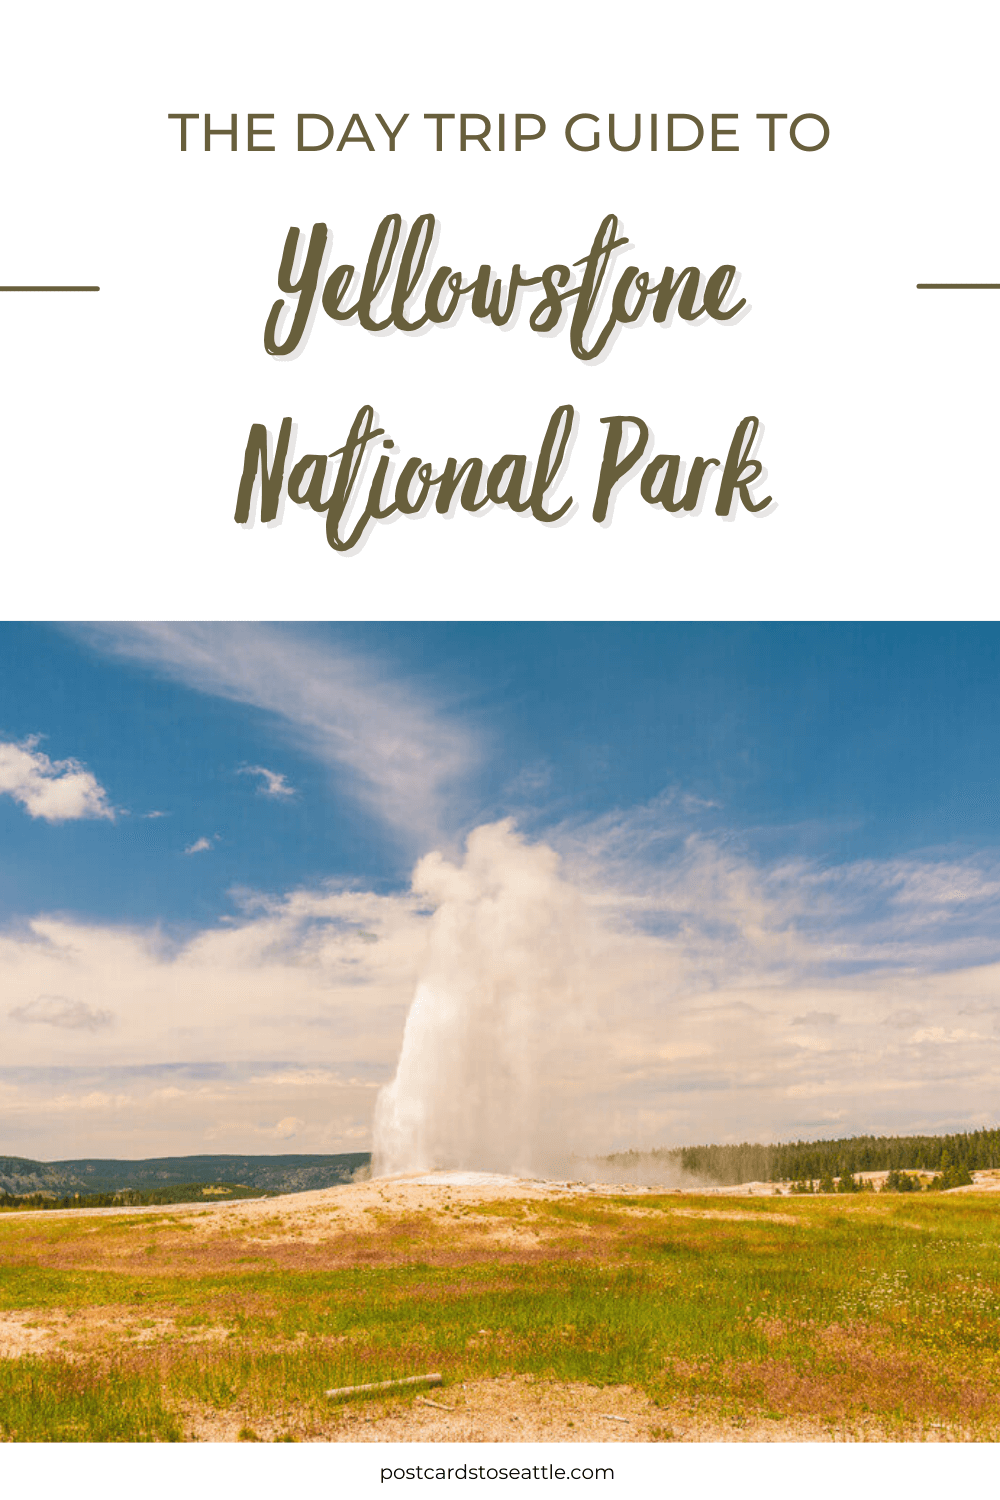 The Best Way to Spend One Day in Yellowstone National Park